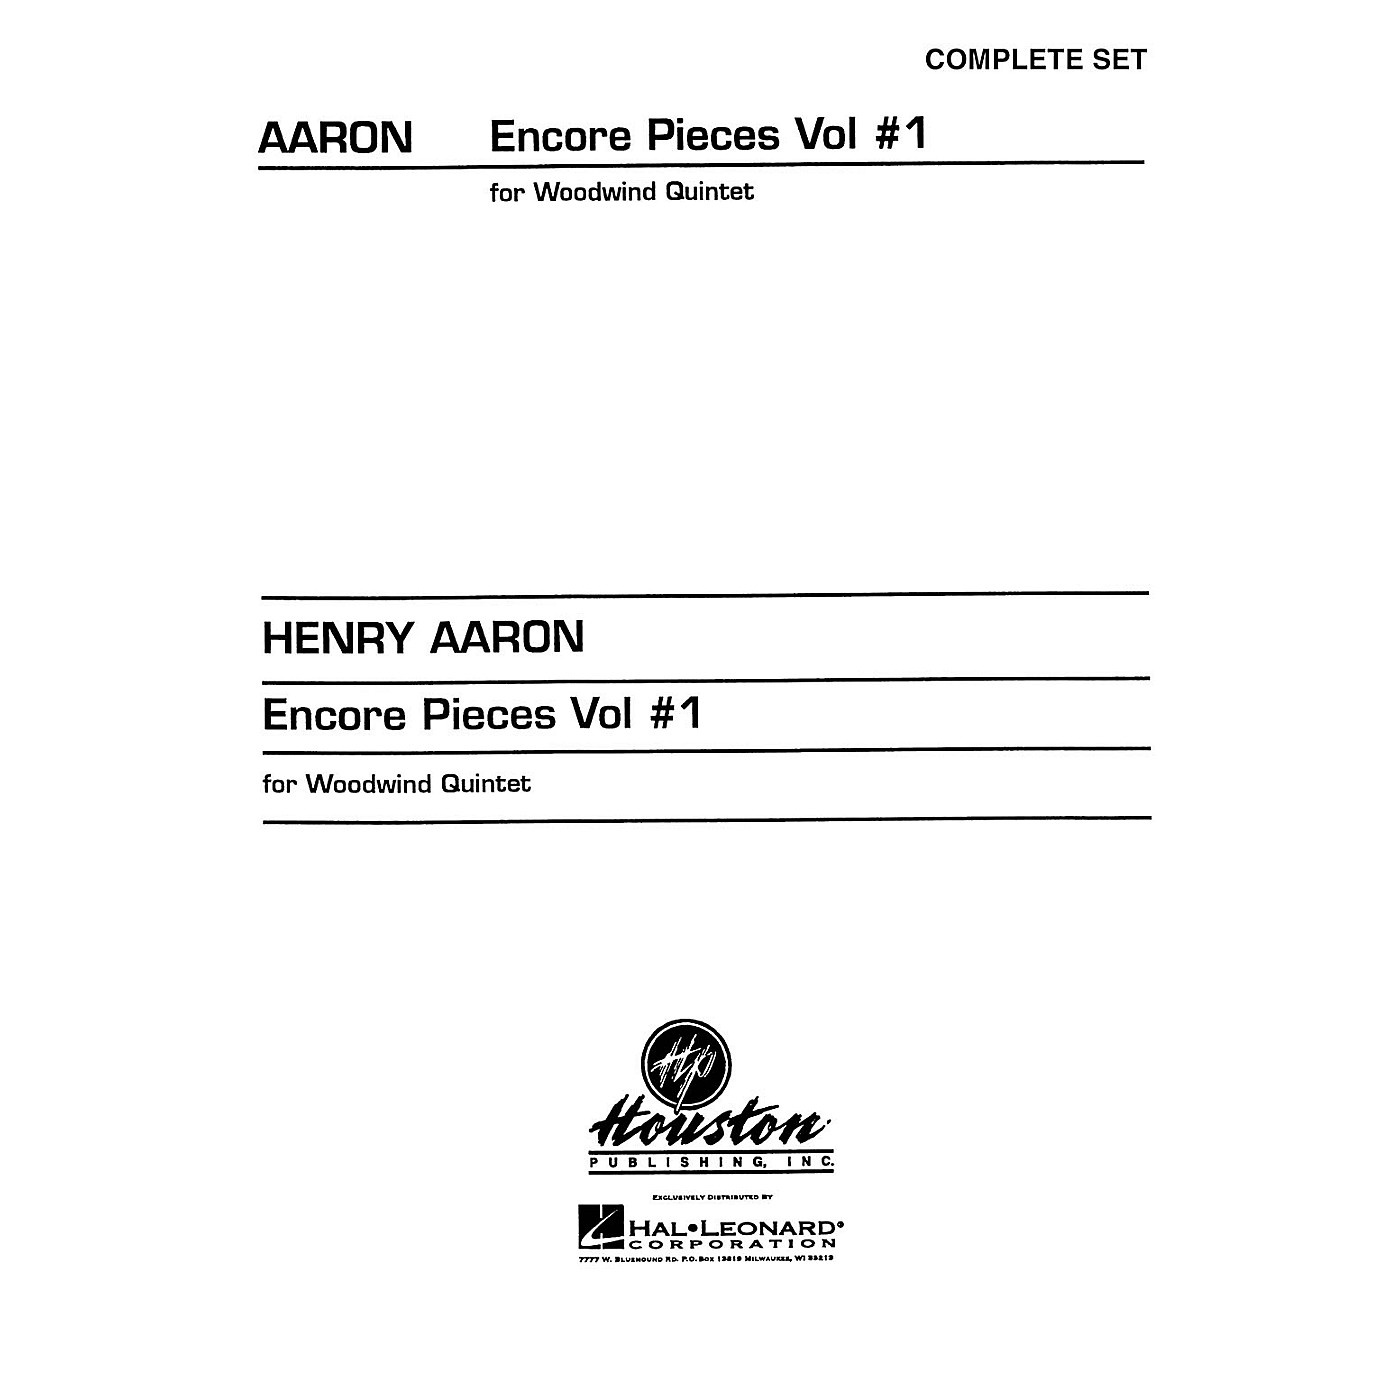 Hal Leonard Encore Pieces for Woodwind Quintet - Volume 1 (Complete Set) Houston Publishing Series thumbnail